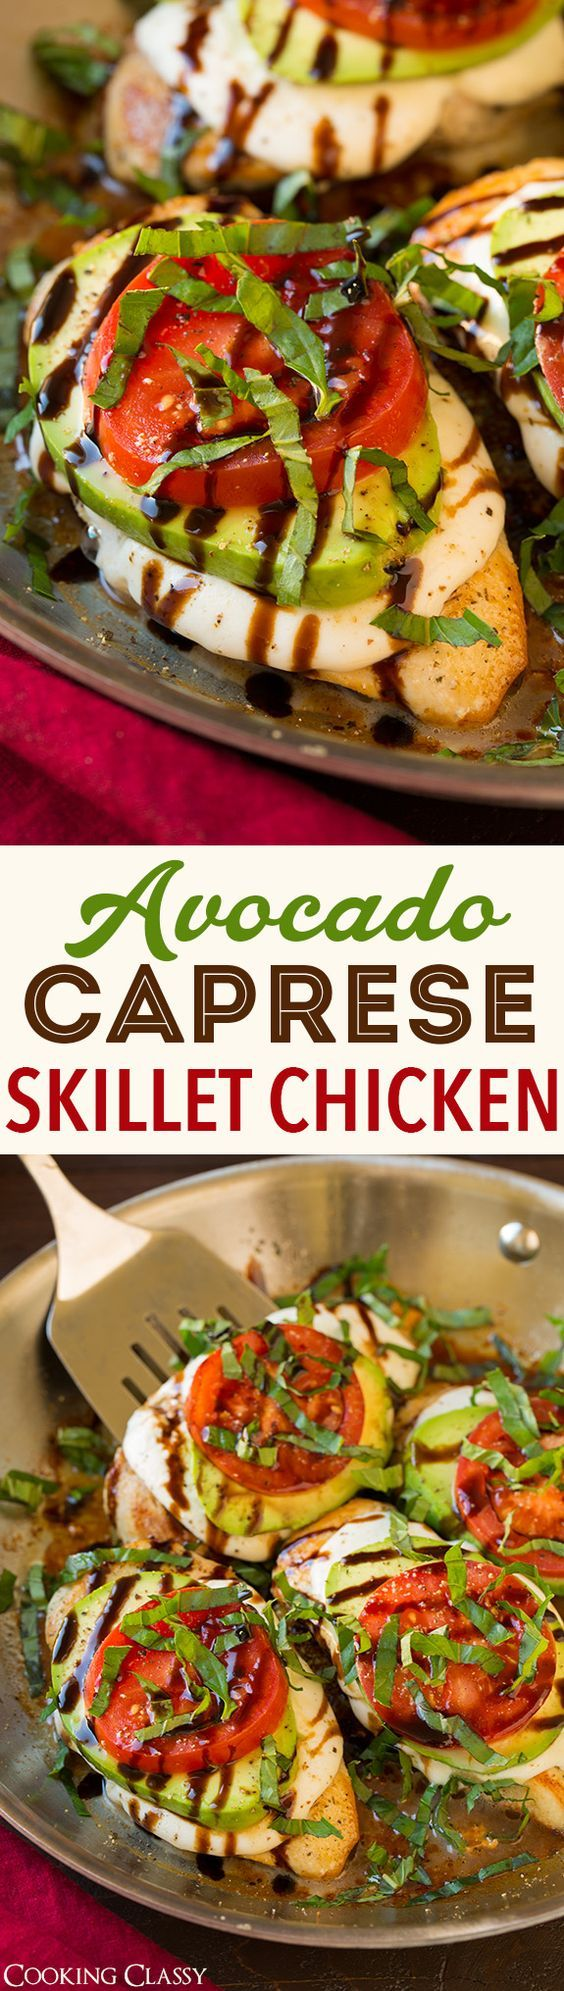 Avocado Caprese Skillet Chicken ~ SO GOOD... Ready under 25 minutes! Definitely a winner!